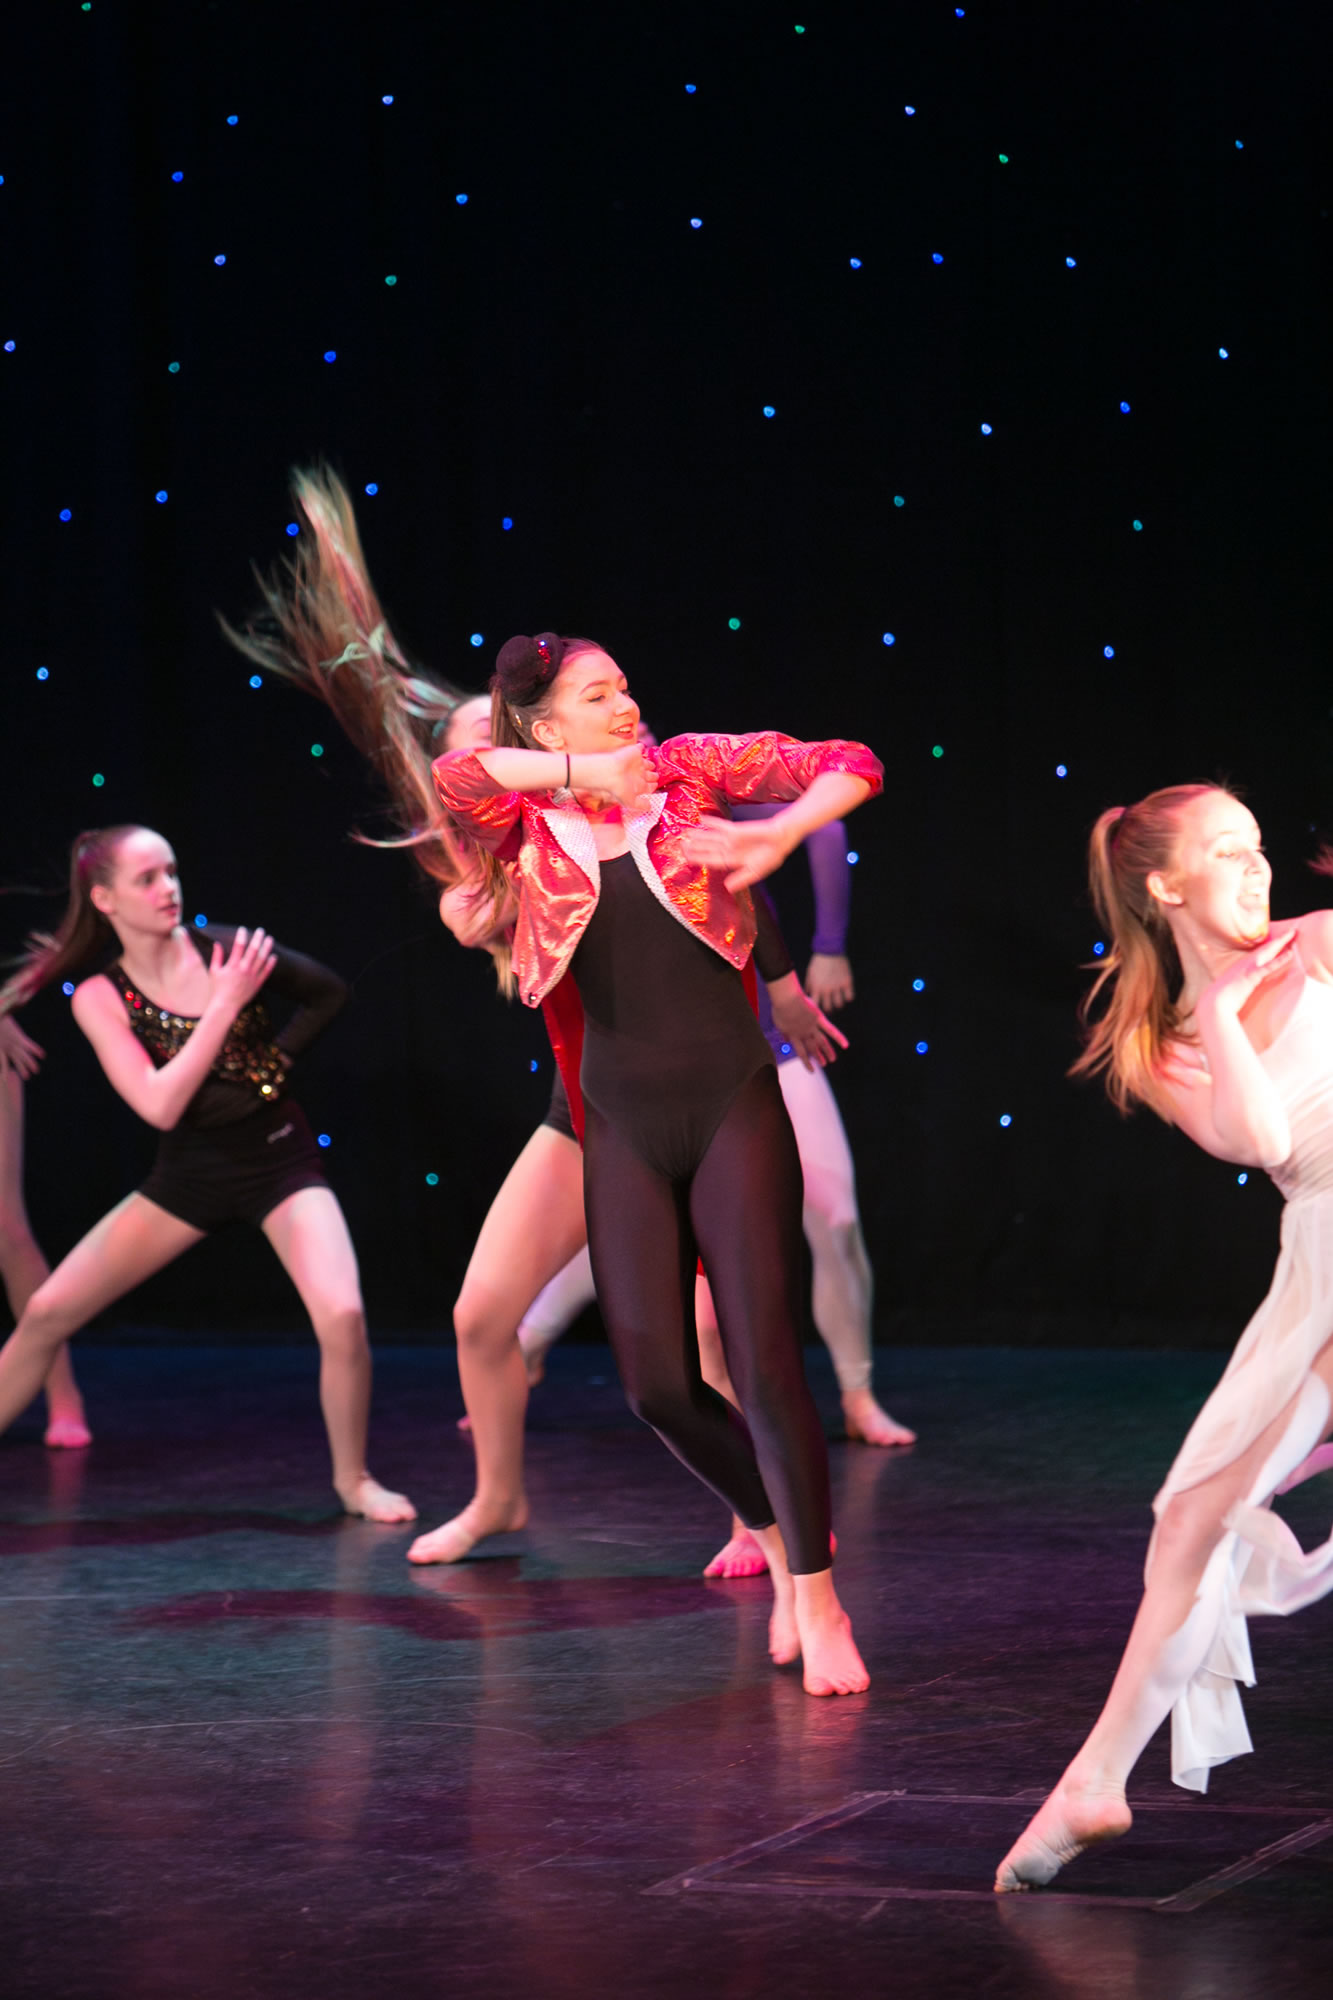 Hitchin_School_of_Dance_Show_2019-SM1_1891.jpg